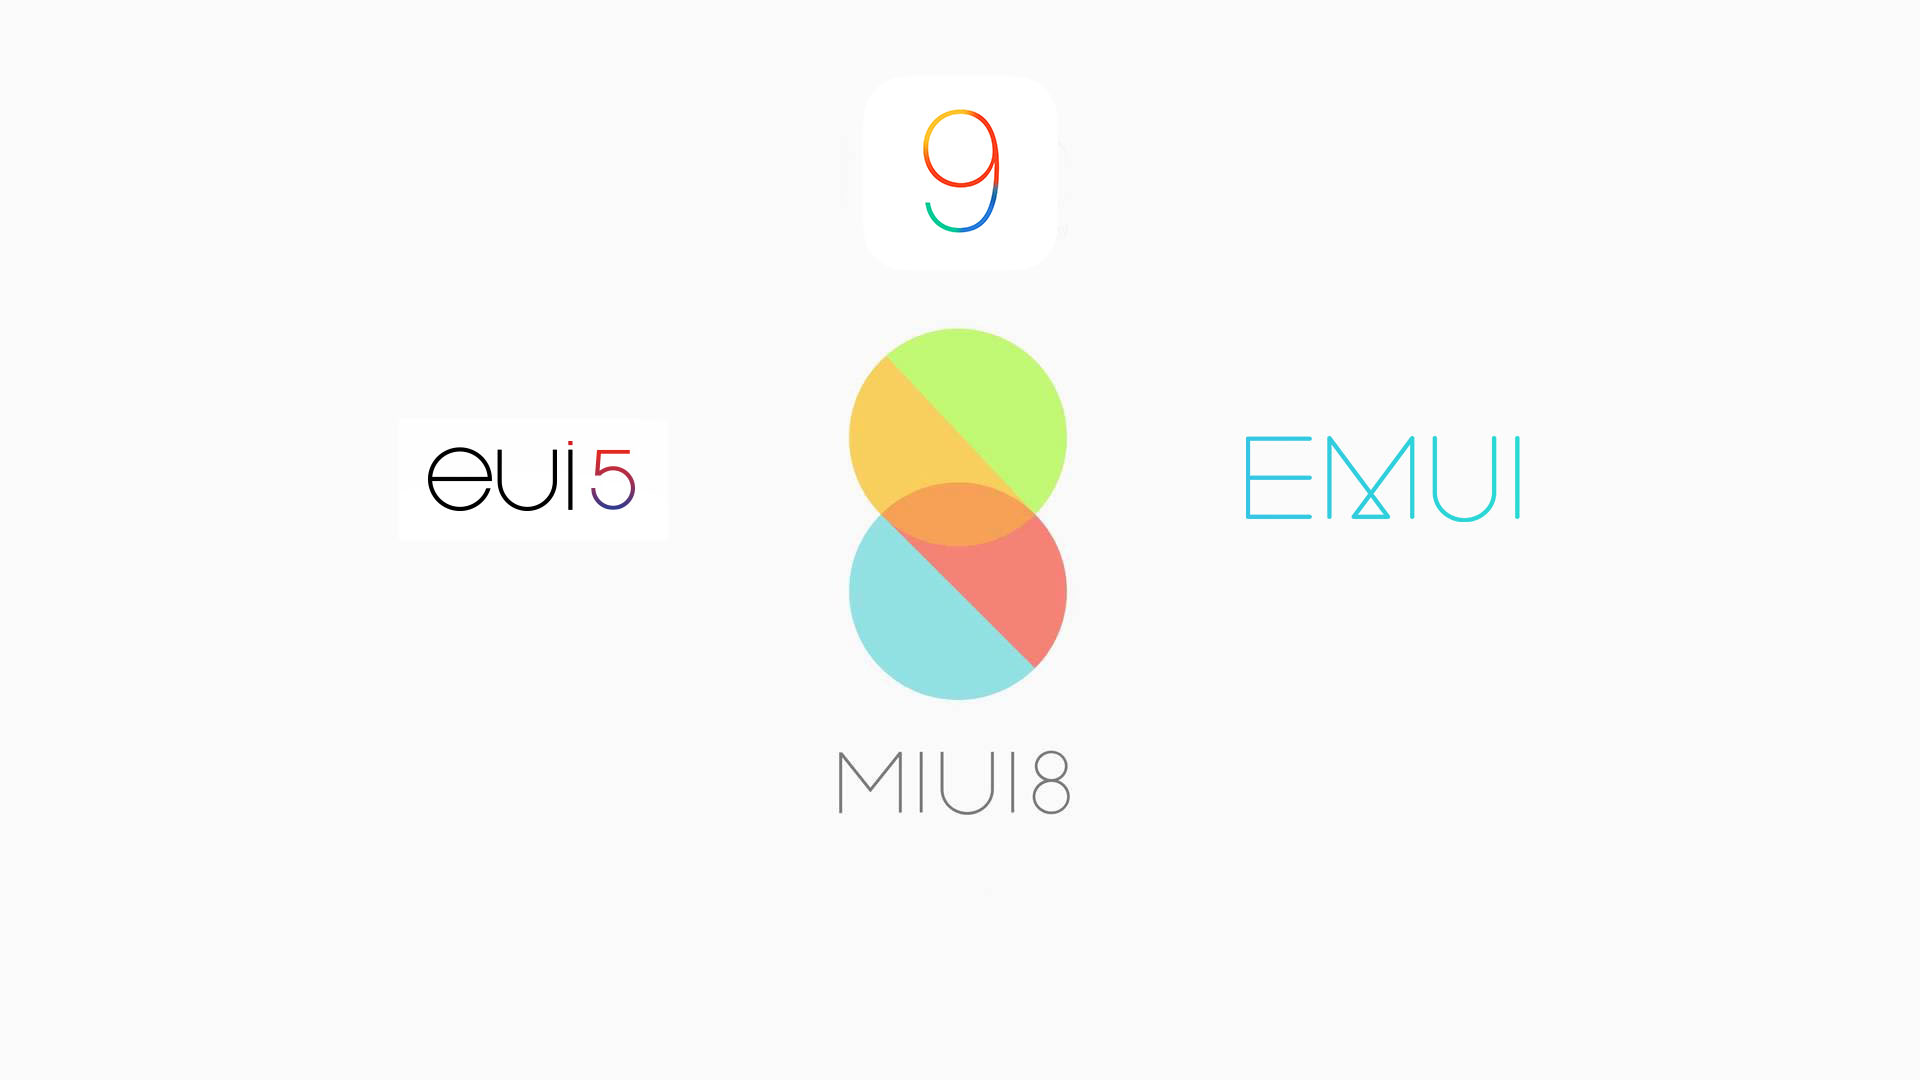 MIUI vs EUI vs EMUI (vs iOs): interfacce a confronto